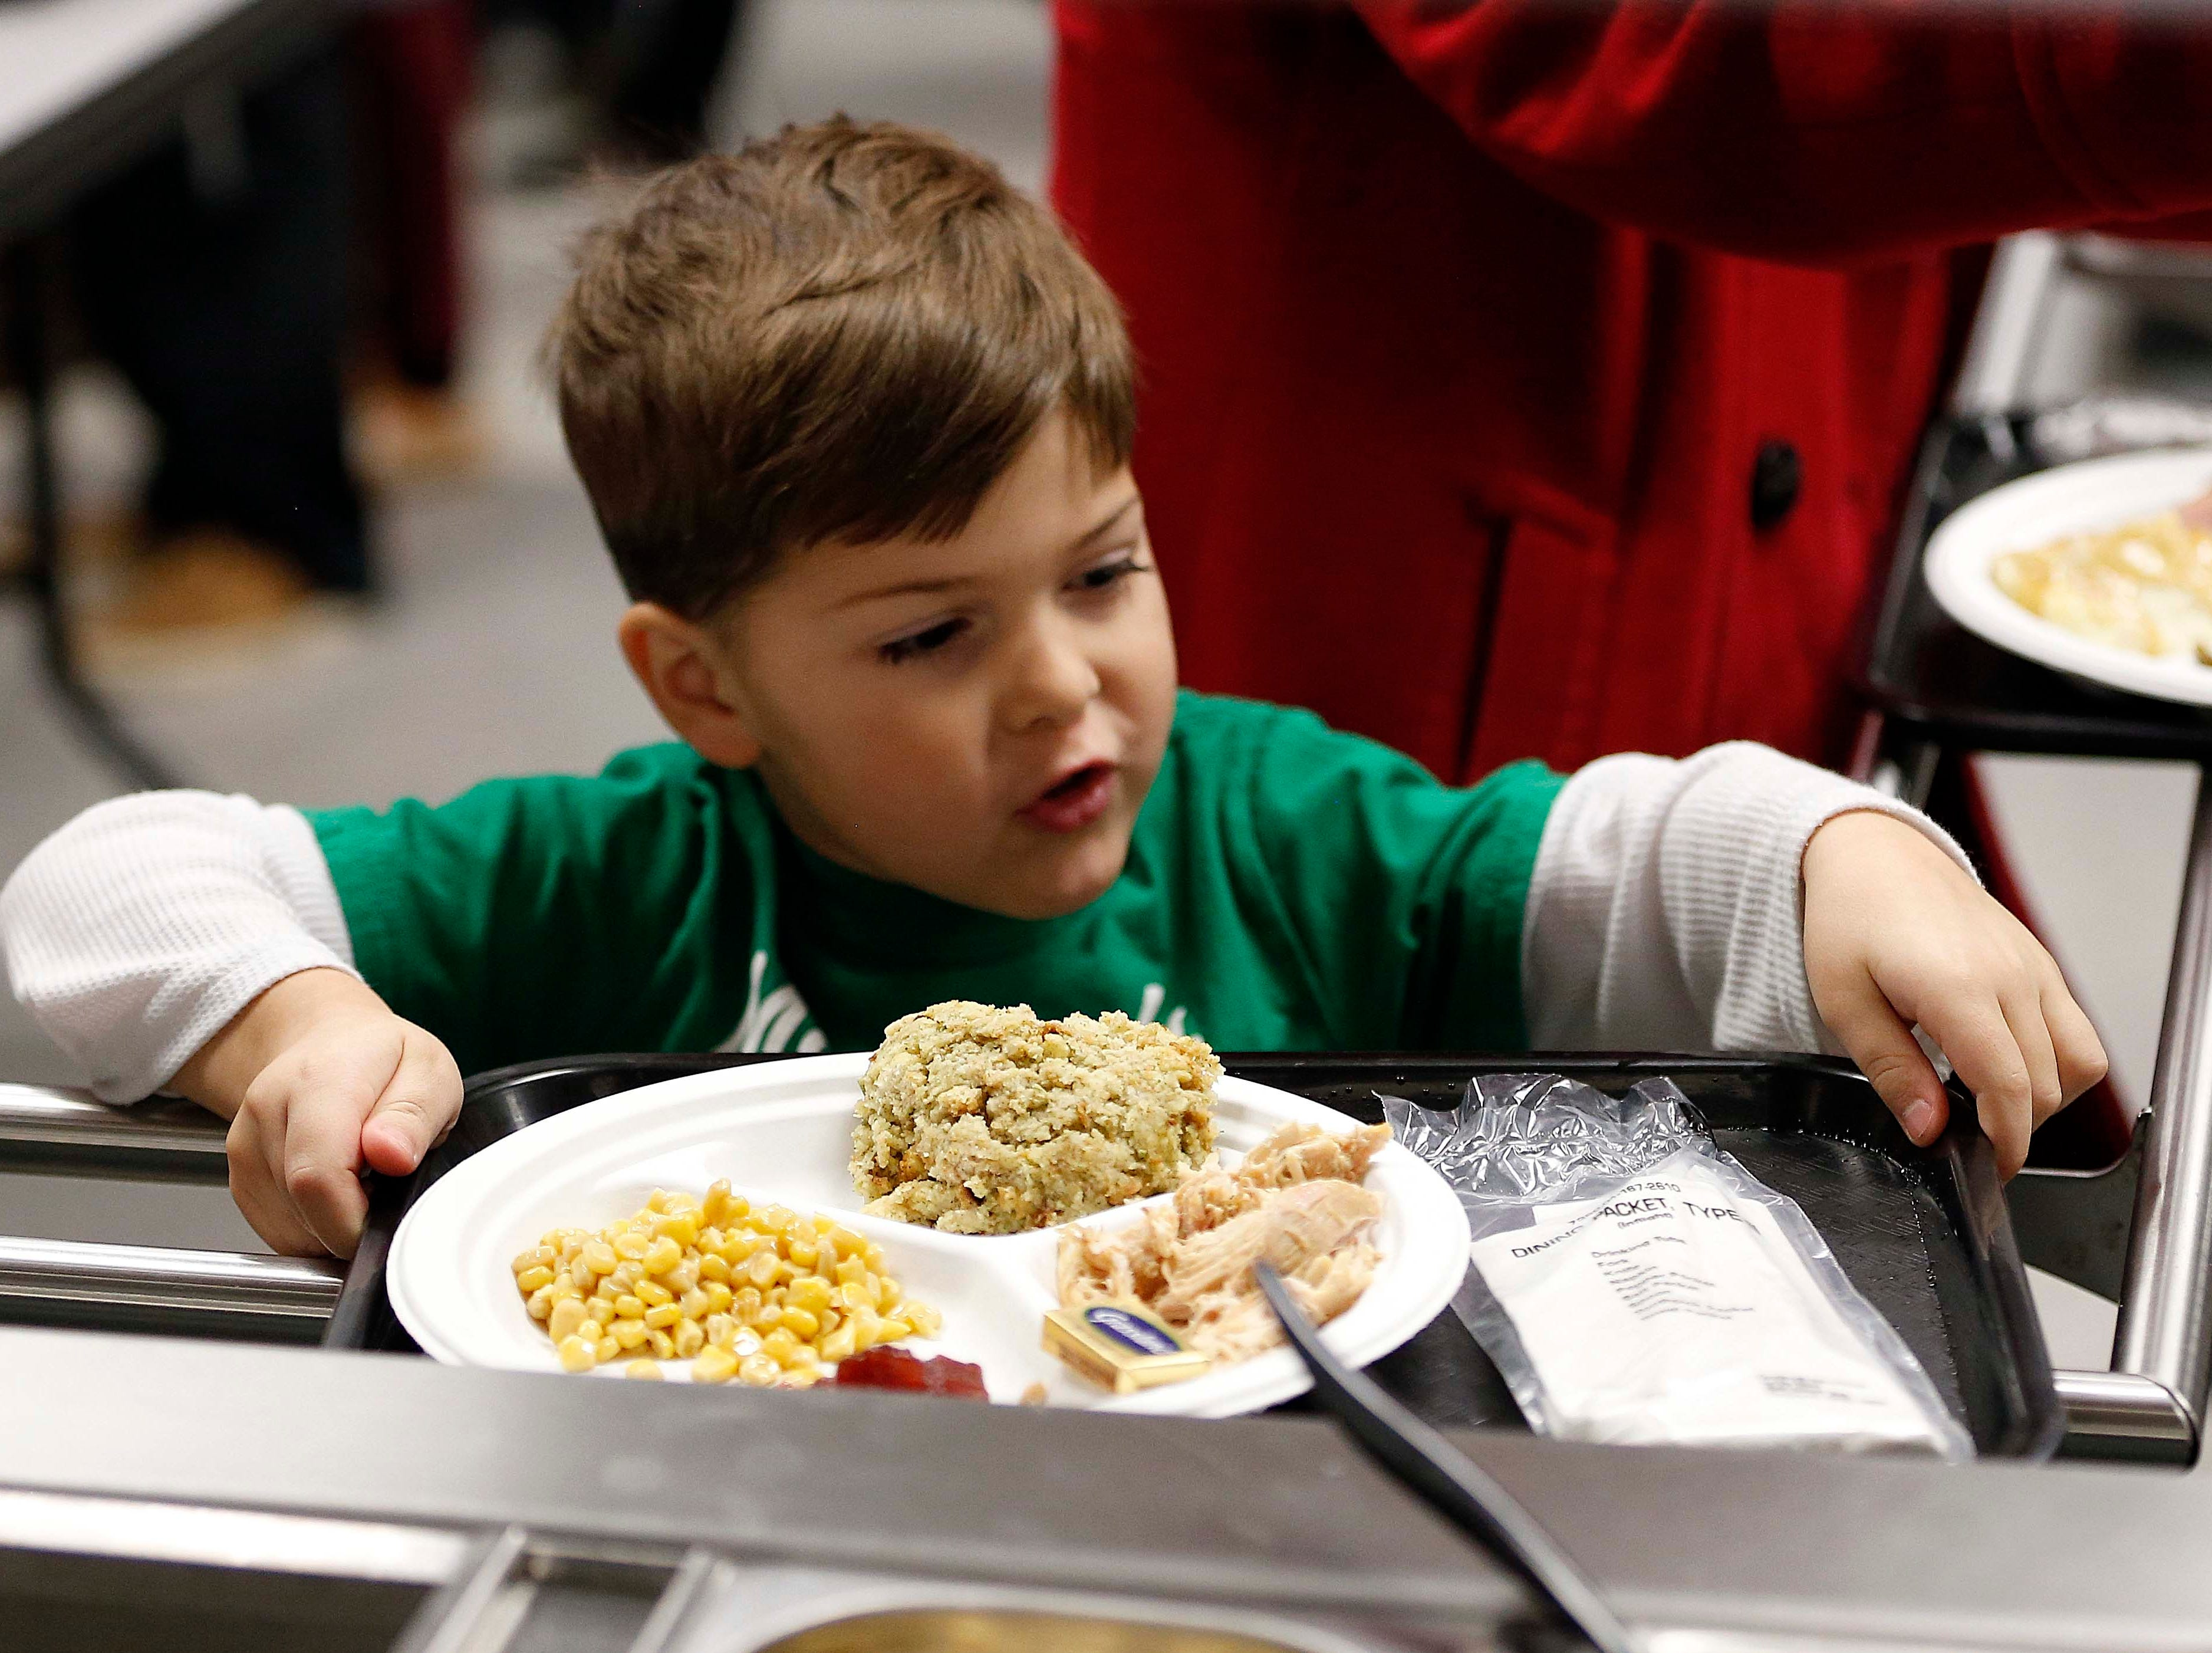 Leon Campos, 4, seen here in line for food at the Holiday Dinner put on by Amvets Post 188 at Willard High School on Dec. 2, 2018.